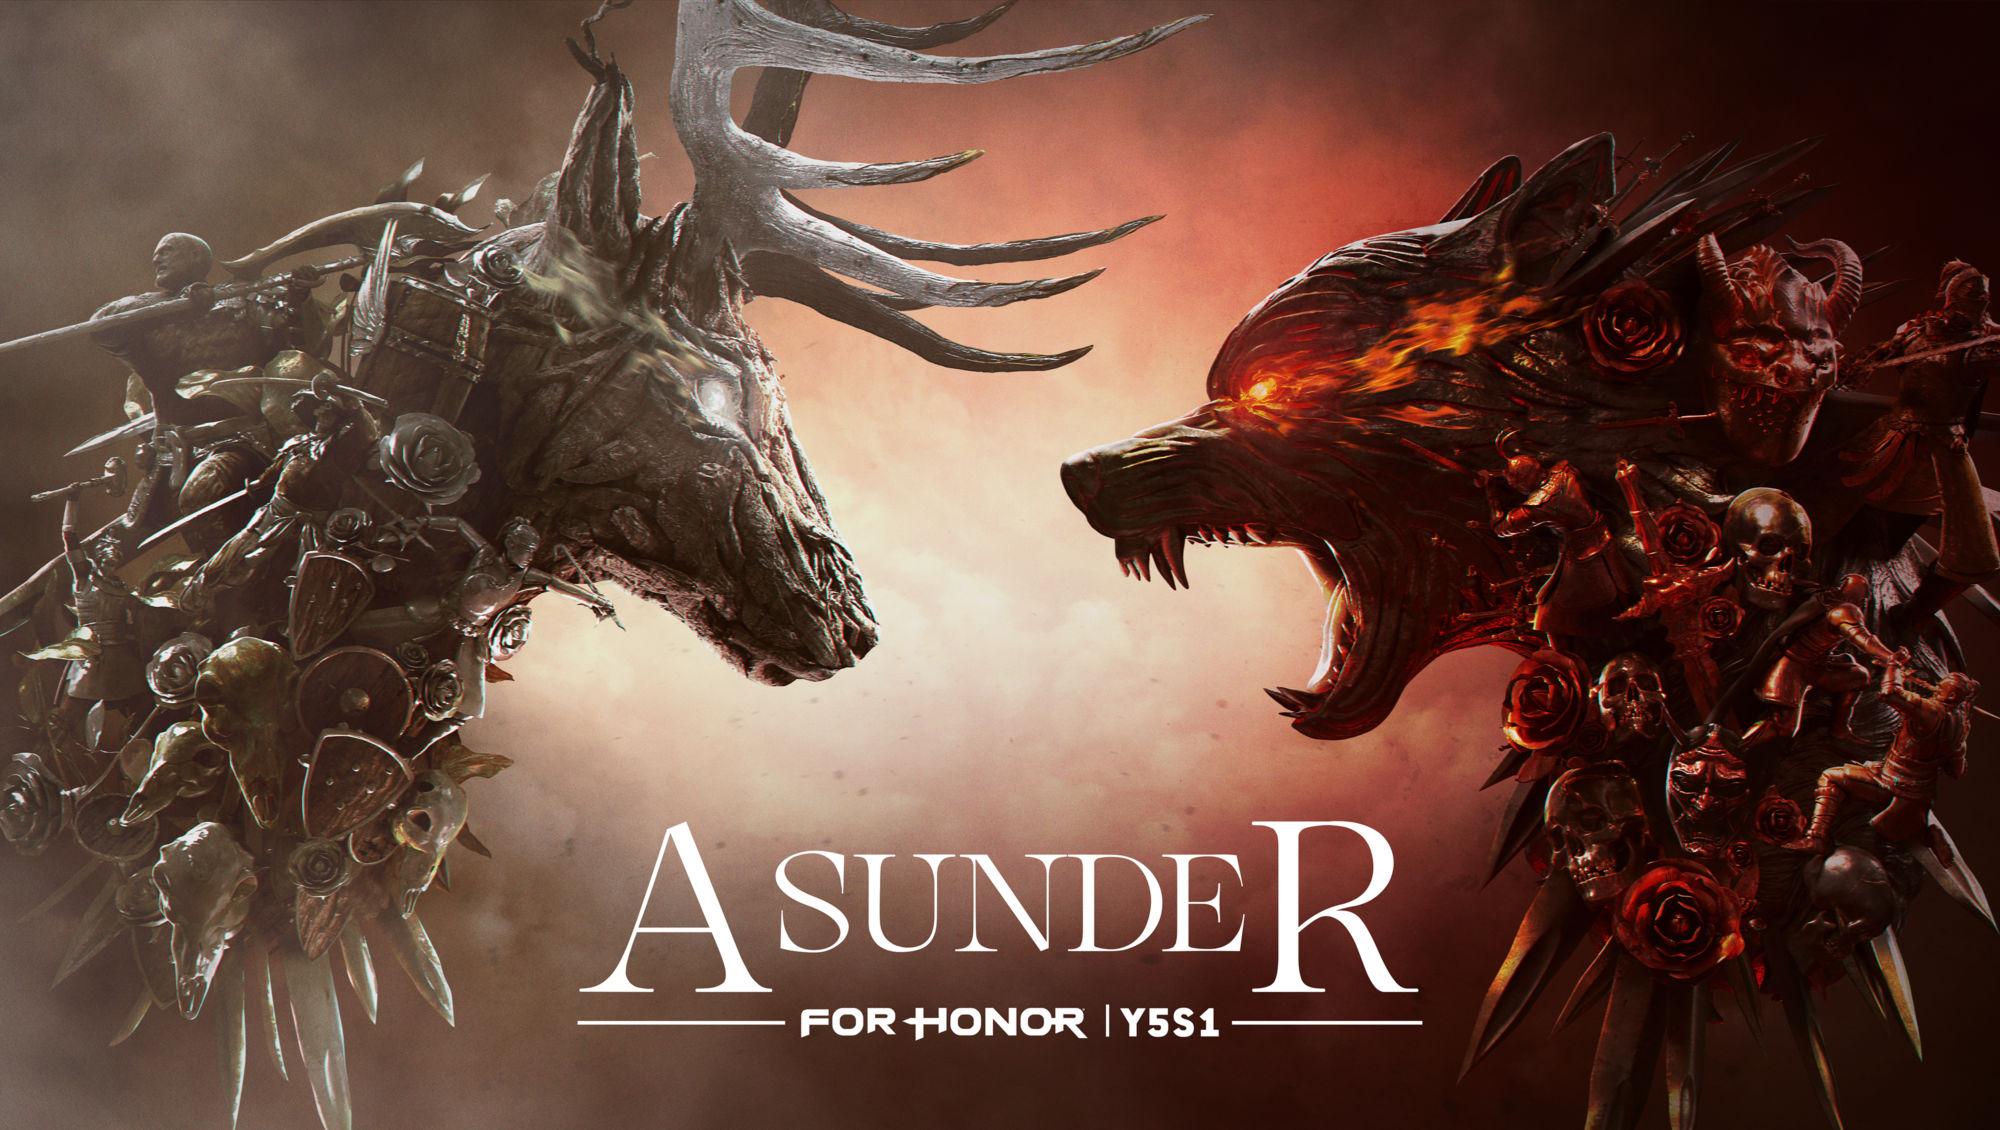 The battle continues for the Chimera Alliance and the Order of Horkos. Courtesy of Ubisoft.